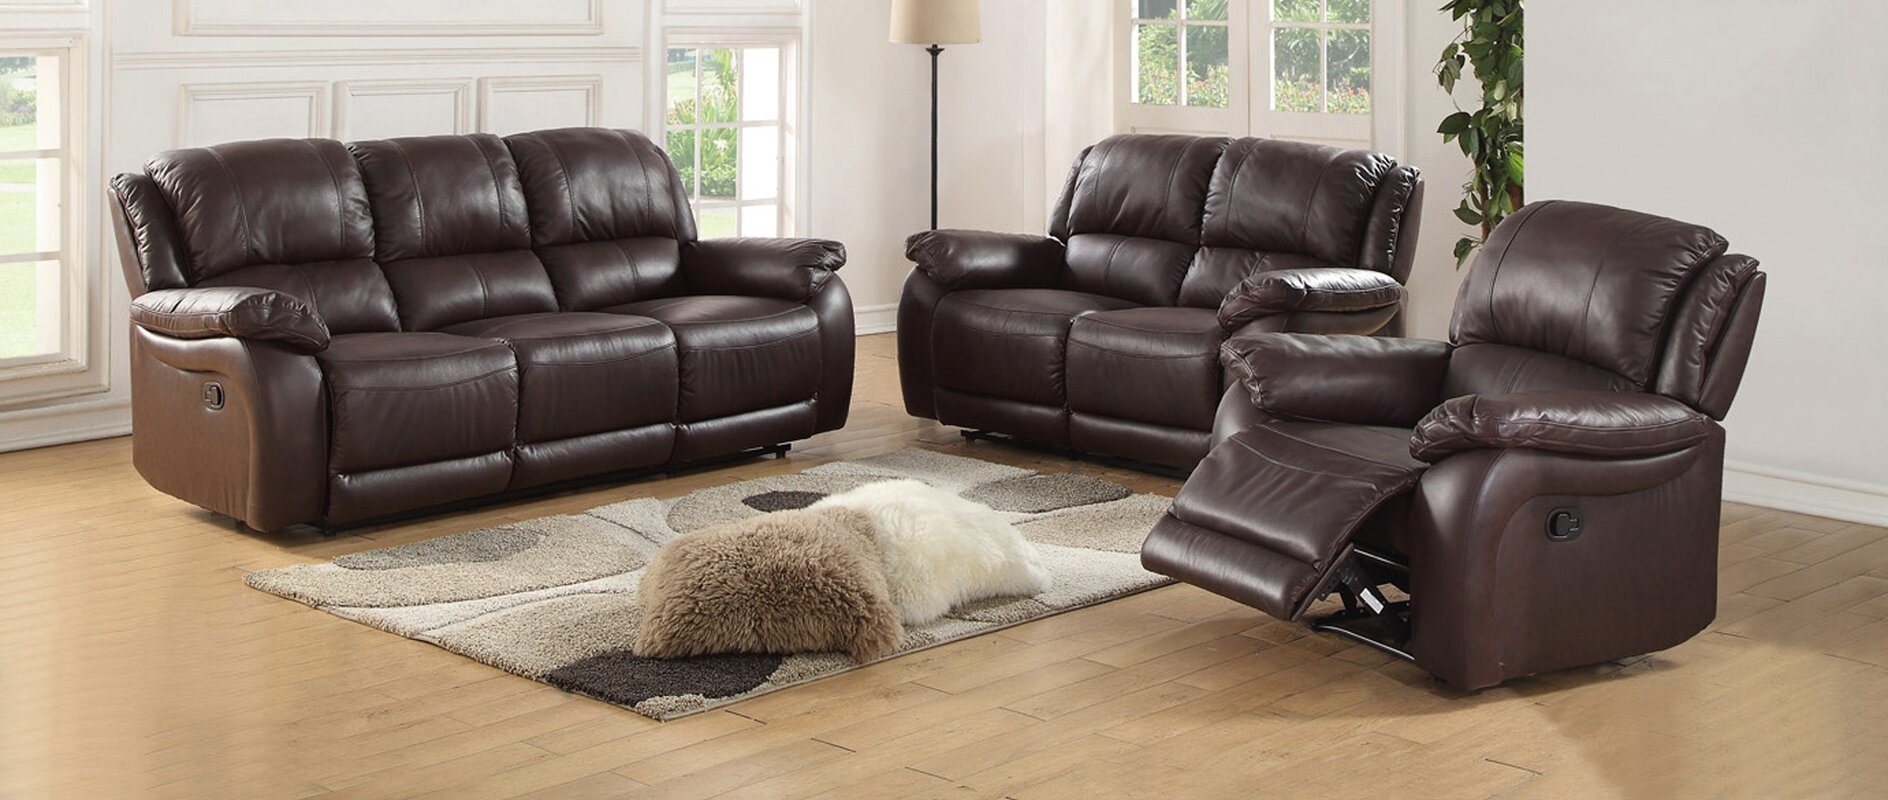 Juan 2 Piece Leather Living Room Set Part 81